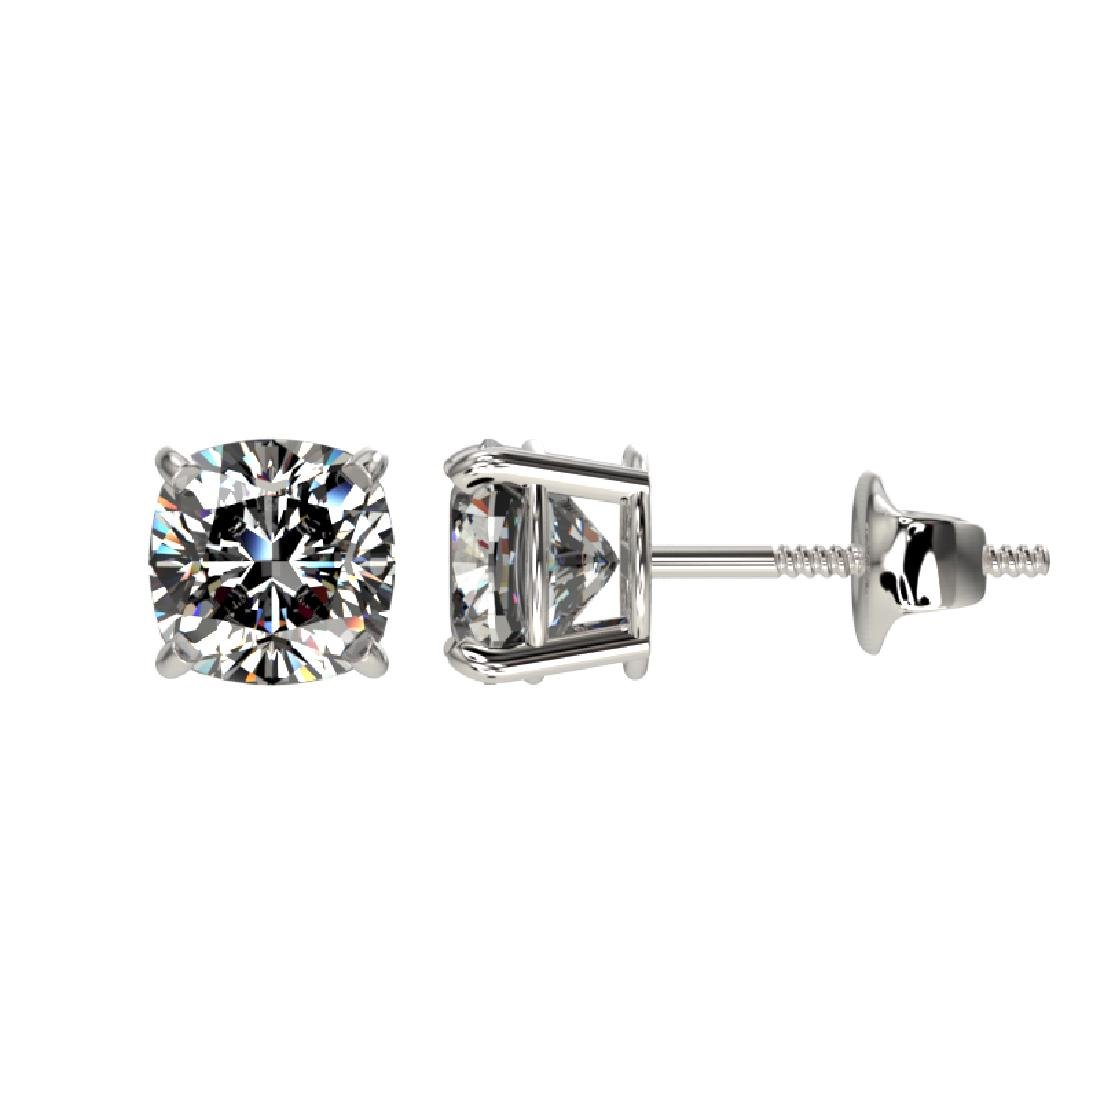 1 CTW Certified VS/SI Quality Cushion Cut Diamond Stud - 2